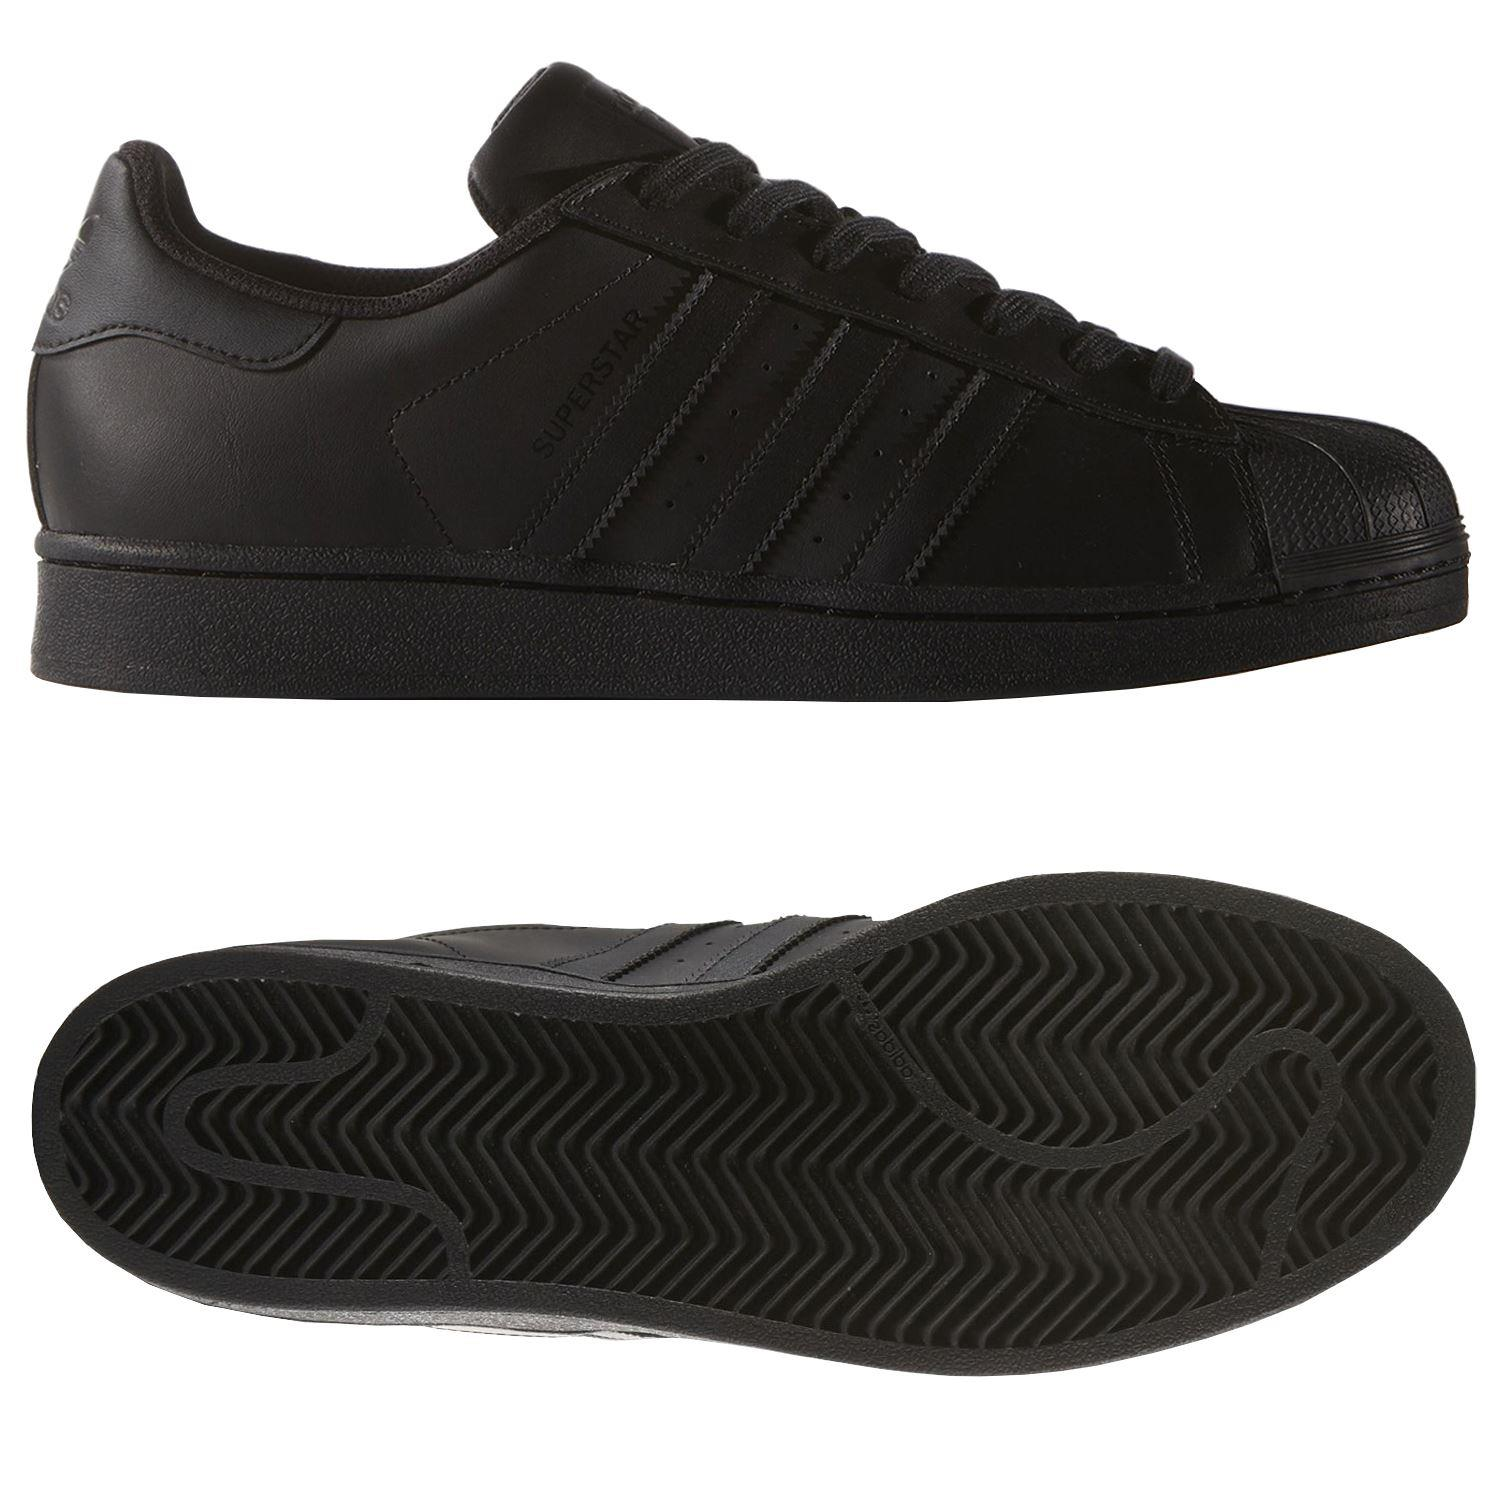 Mordrin Lógicamente Representar  adidas ORIGINALS SUPERSTAR FOUNDATION SHOES ALL BLACK TRAINERS MENS | eBay